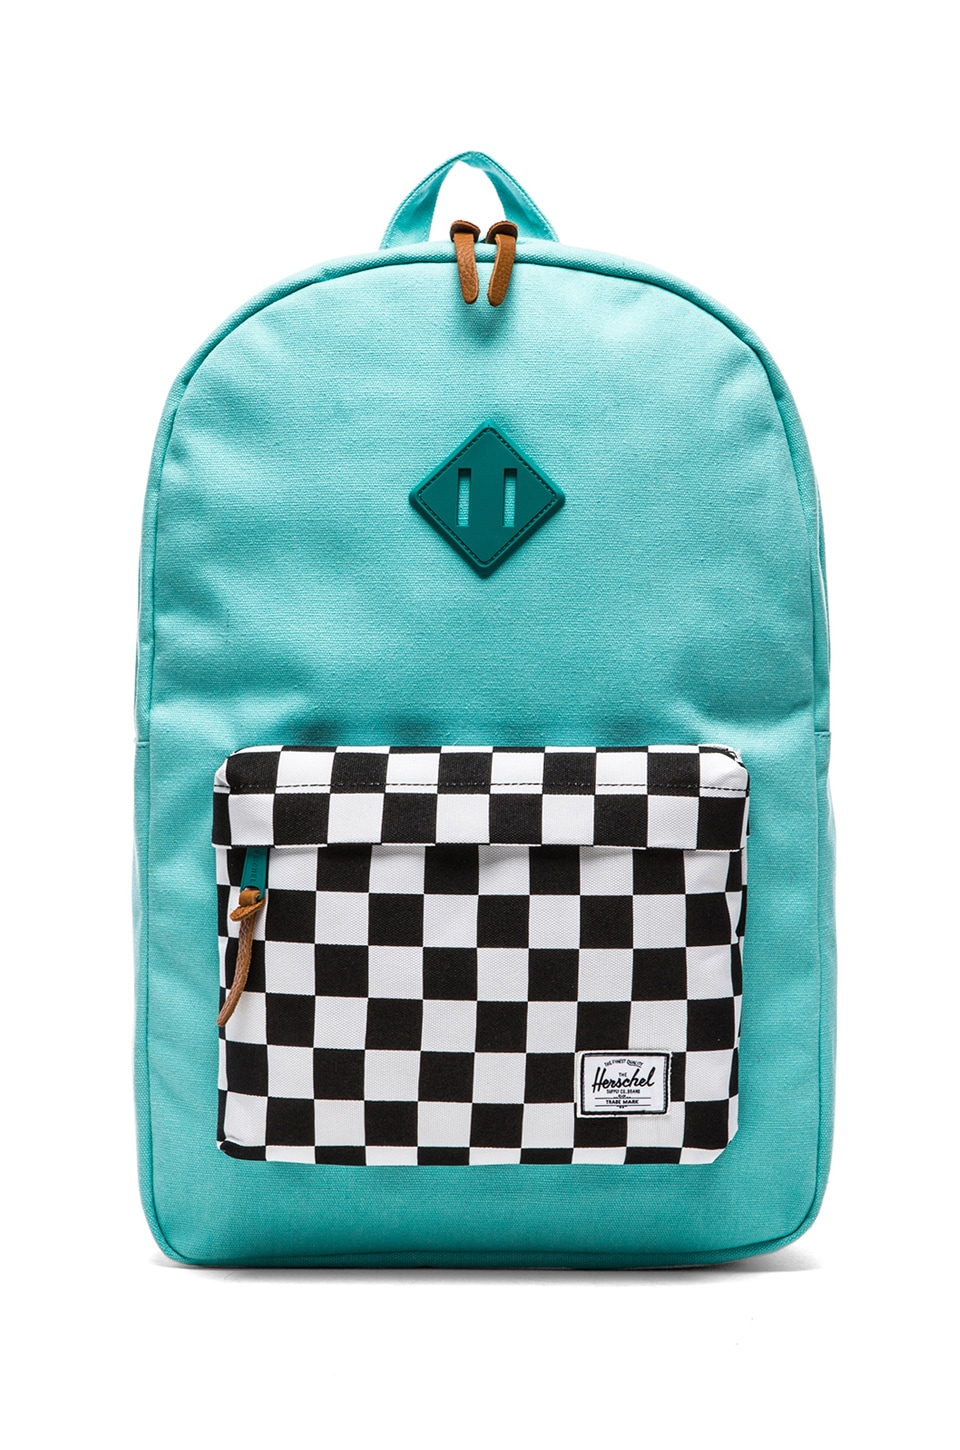 Herschel Supply Co. Heritage Canvas Collection in Washed Teal & Checkerboard